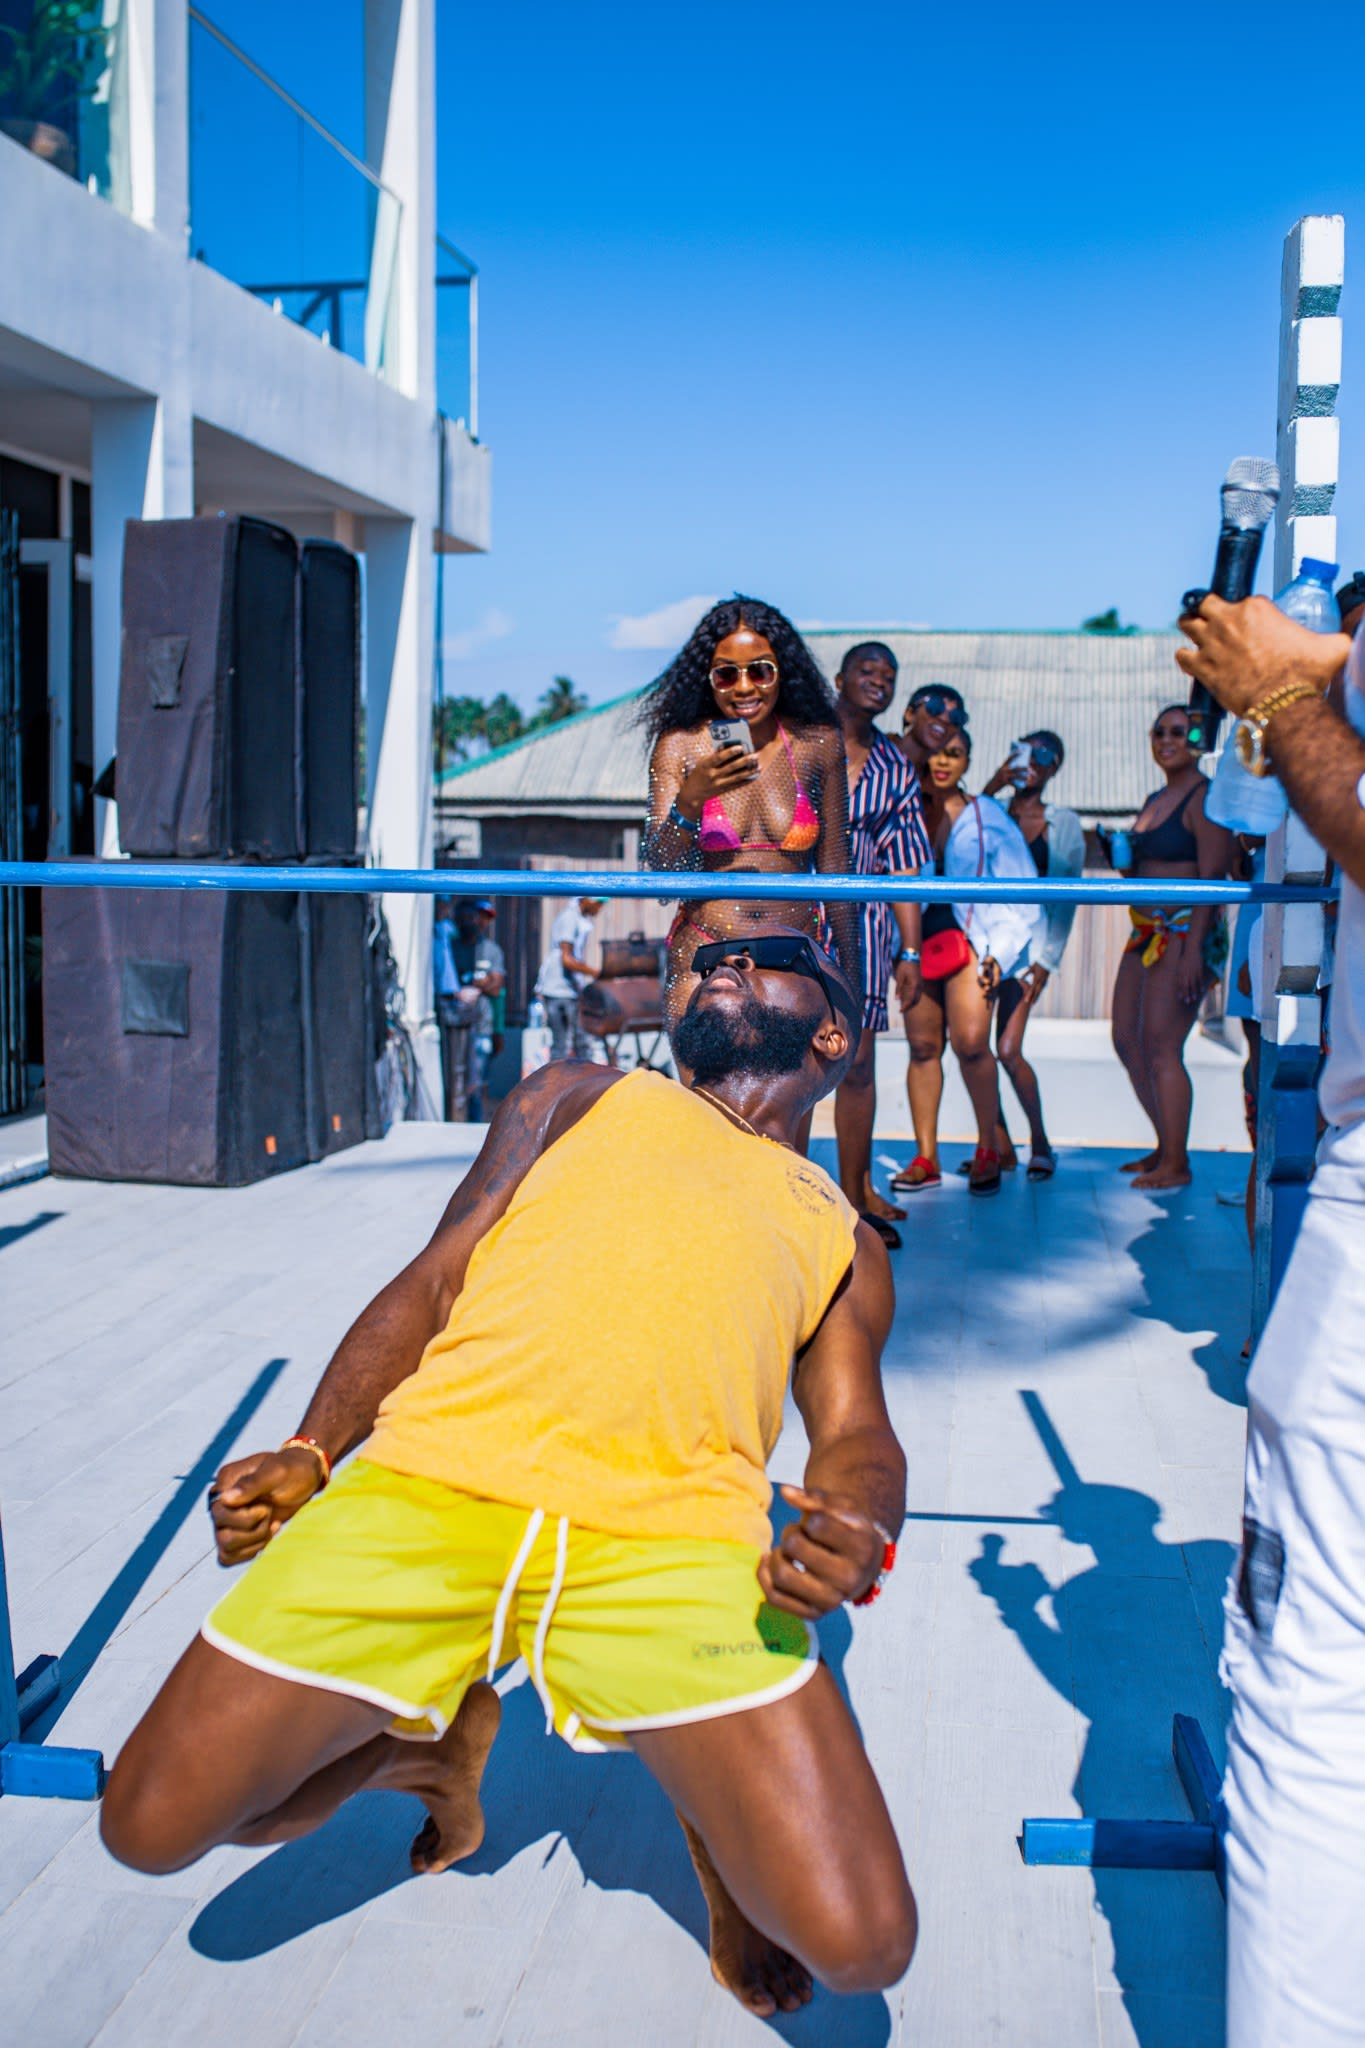 sunky on ciroc party island